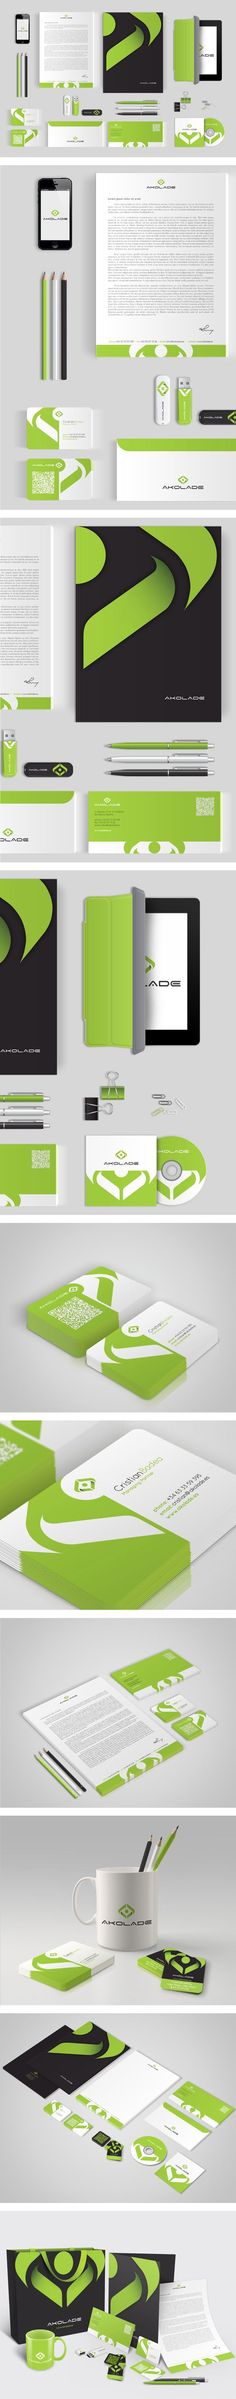 Akolade identity by  Vio Pintilie | #stationary #corporate #design…